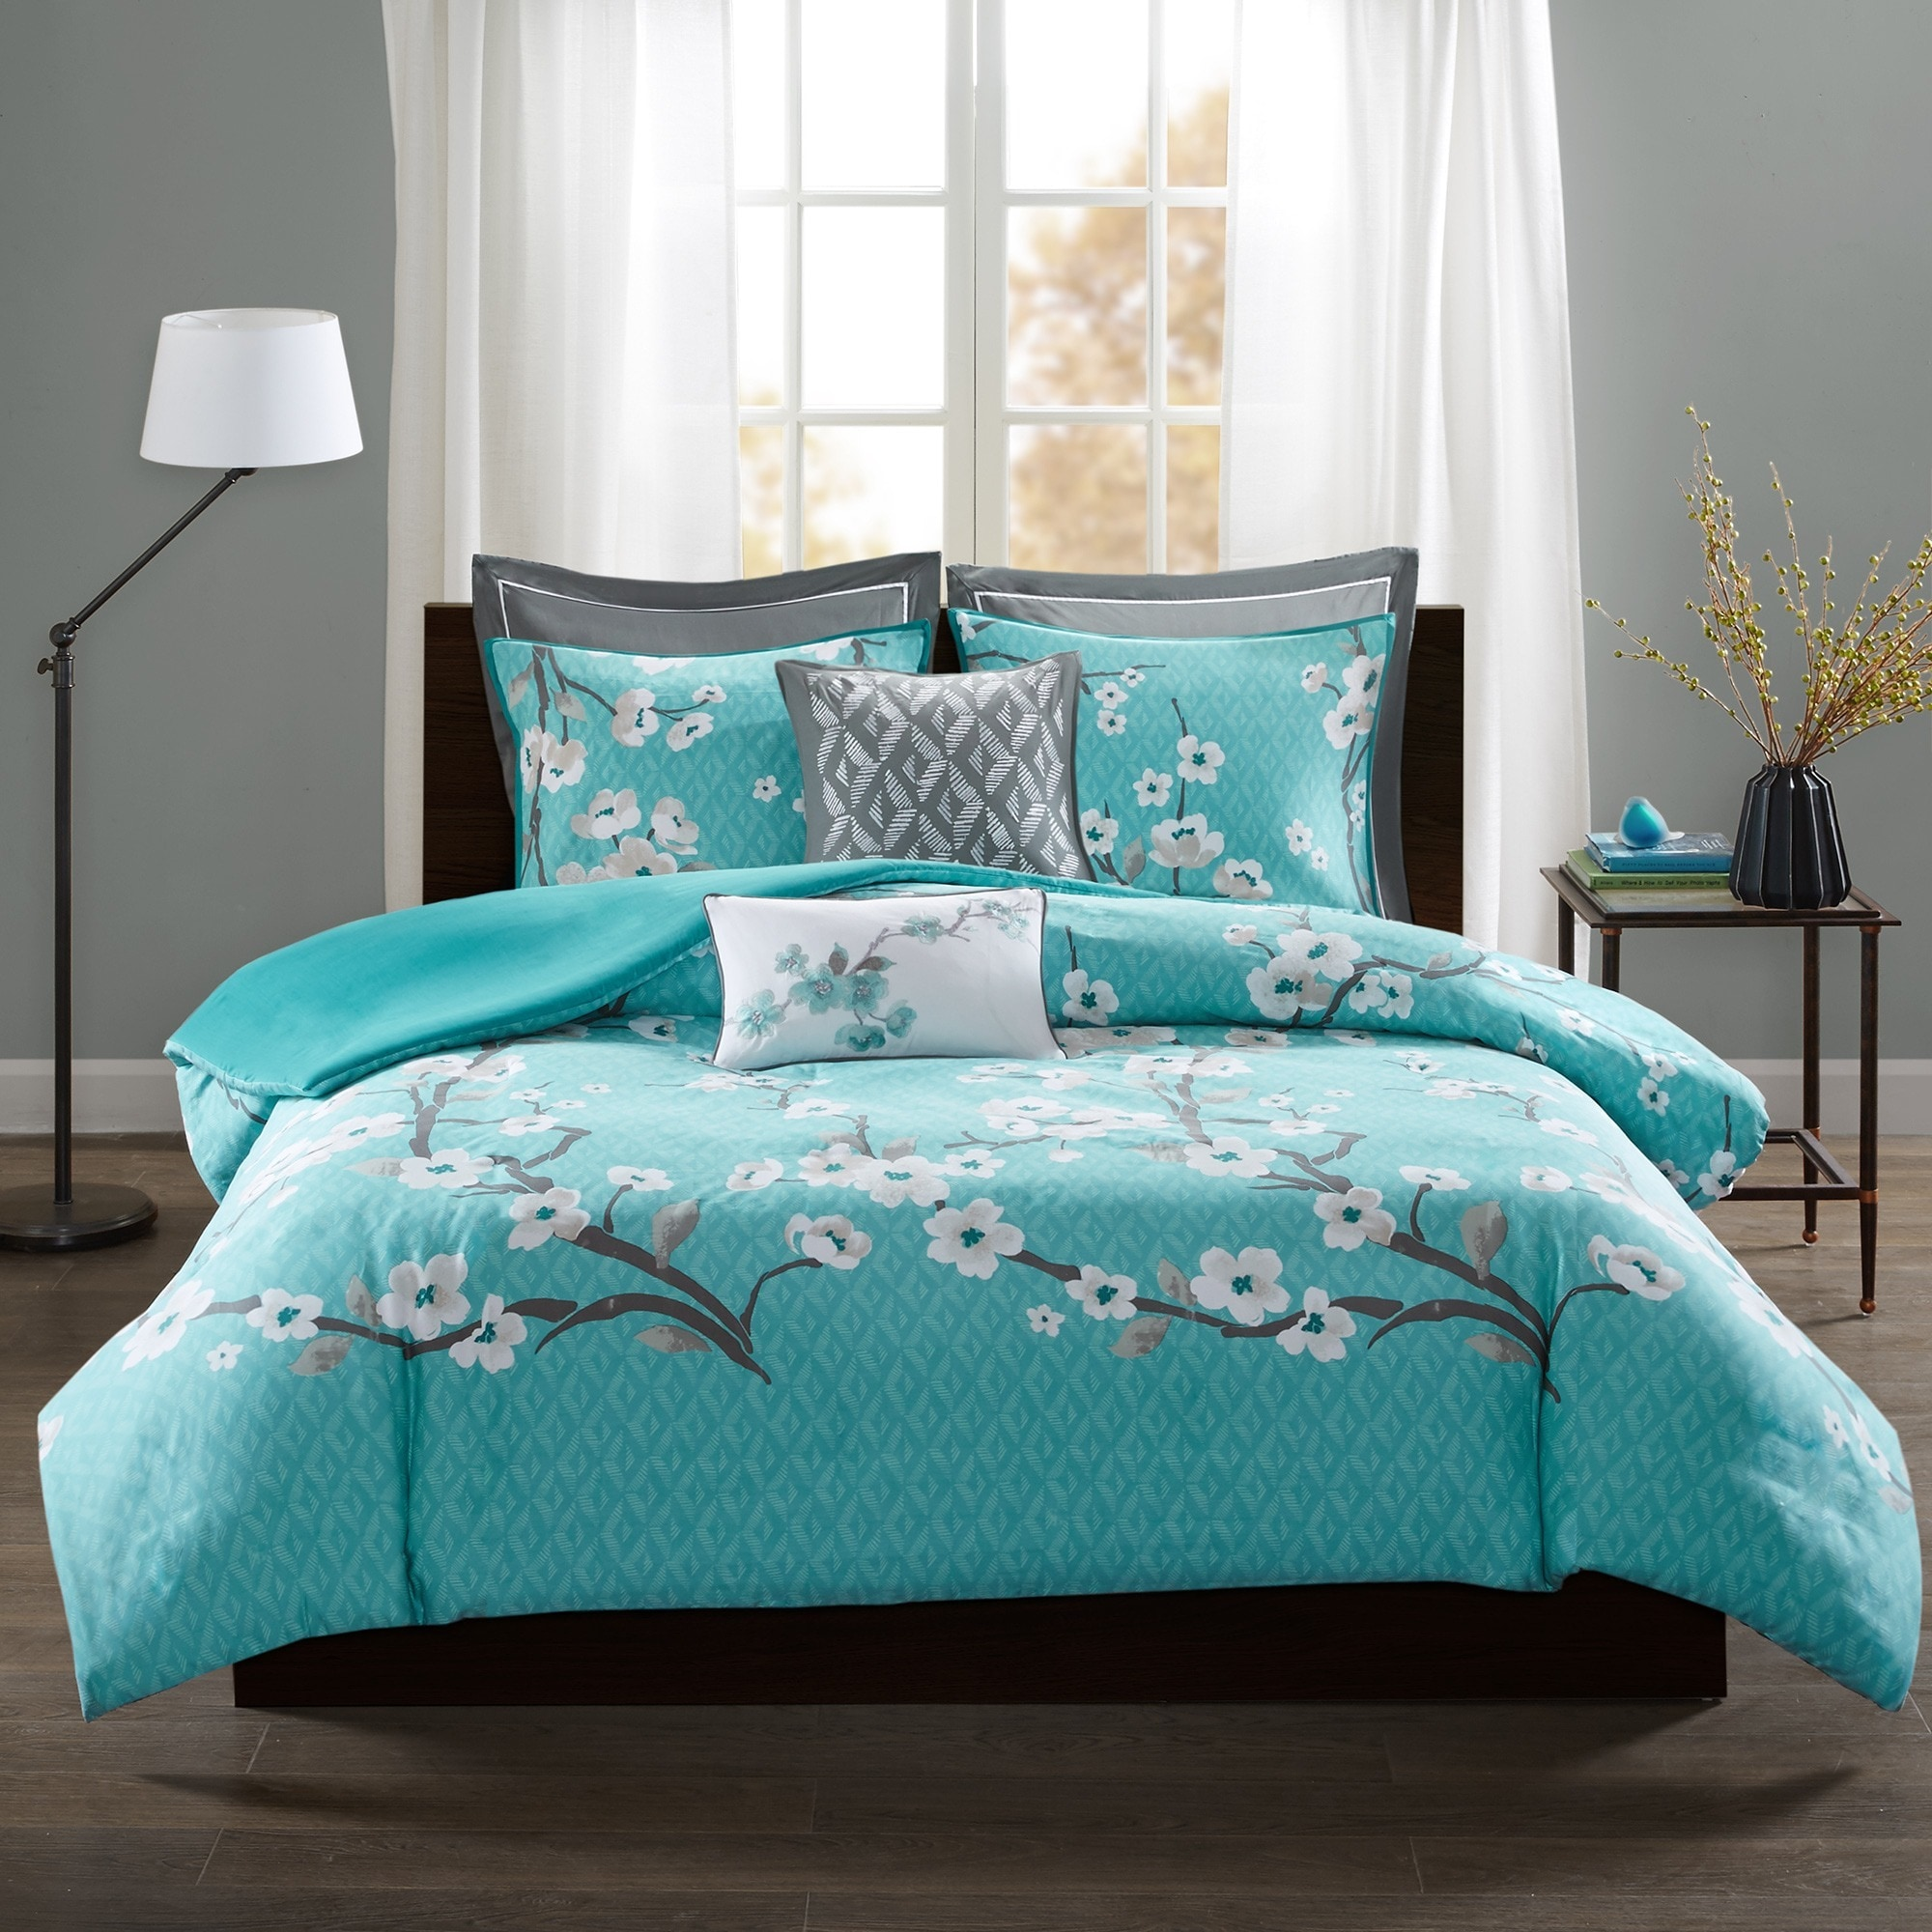 Madison Park Isabella Teal 7 Piece Cotton Duvet Cover Set